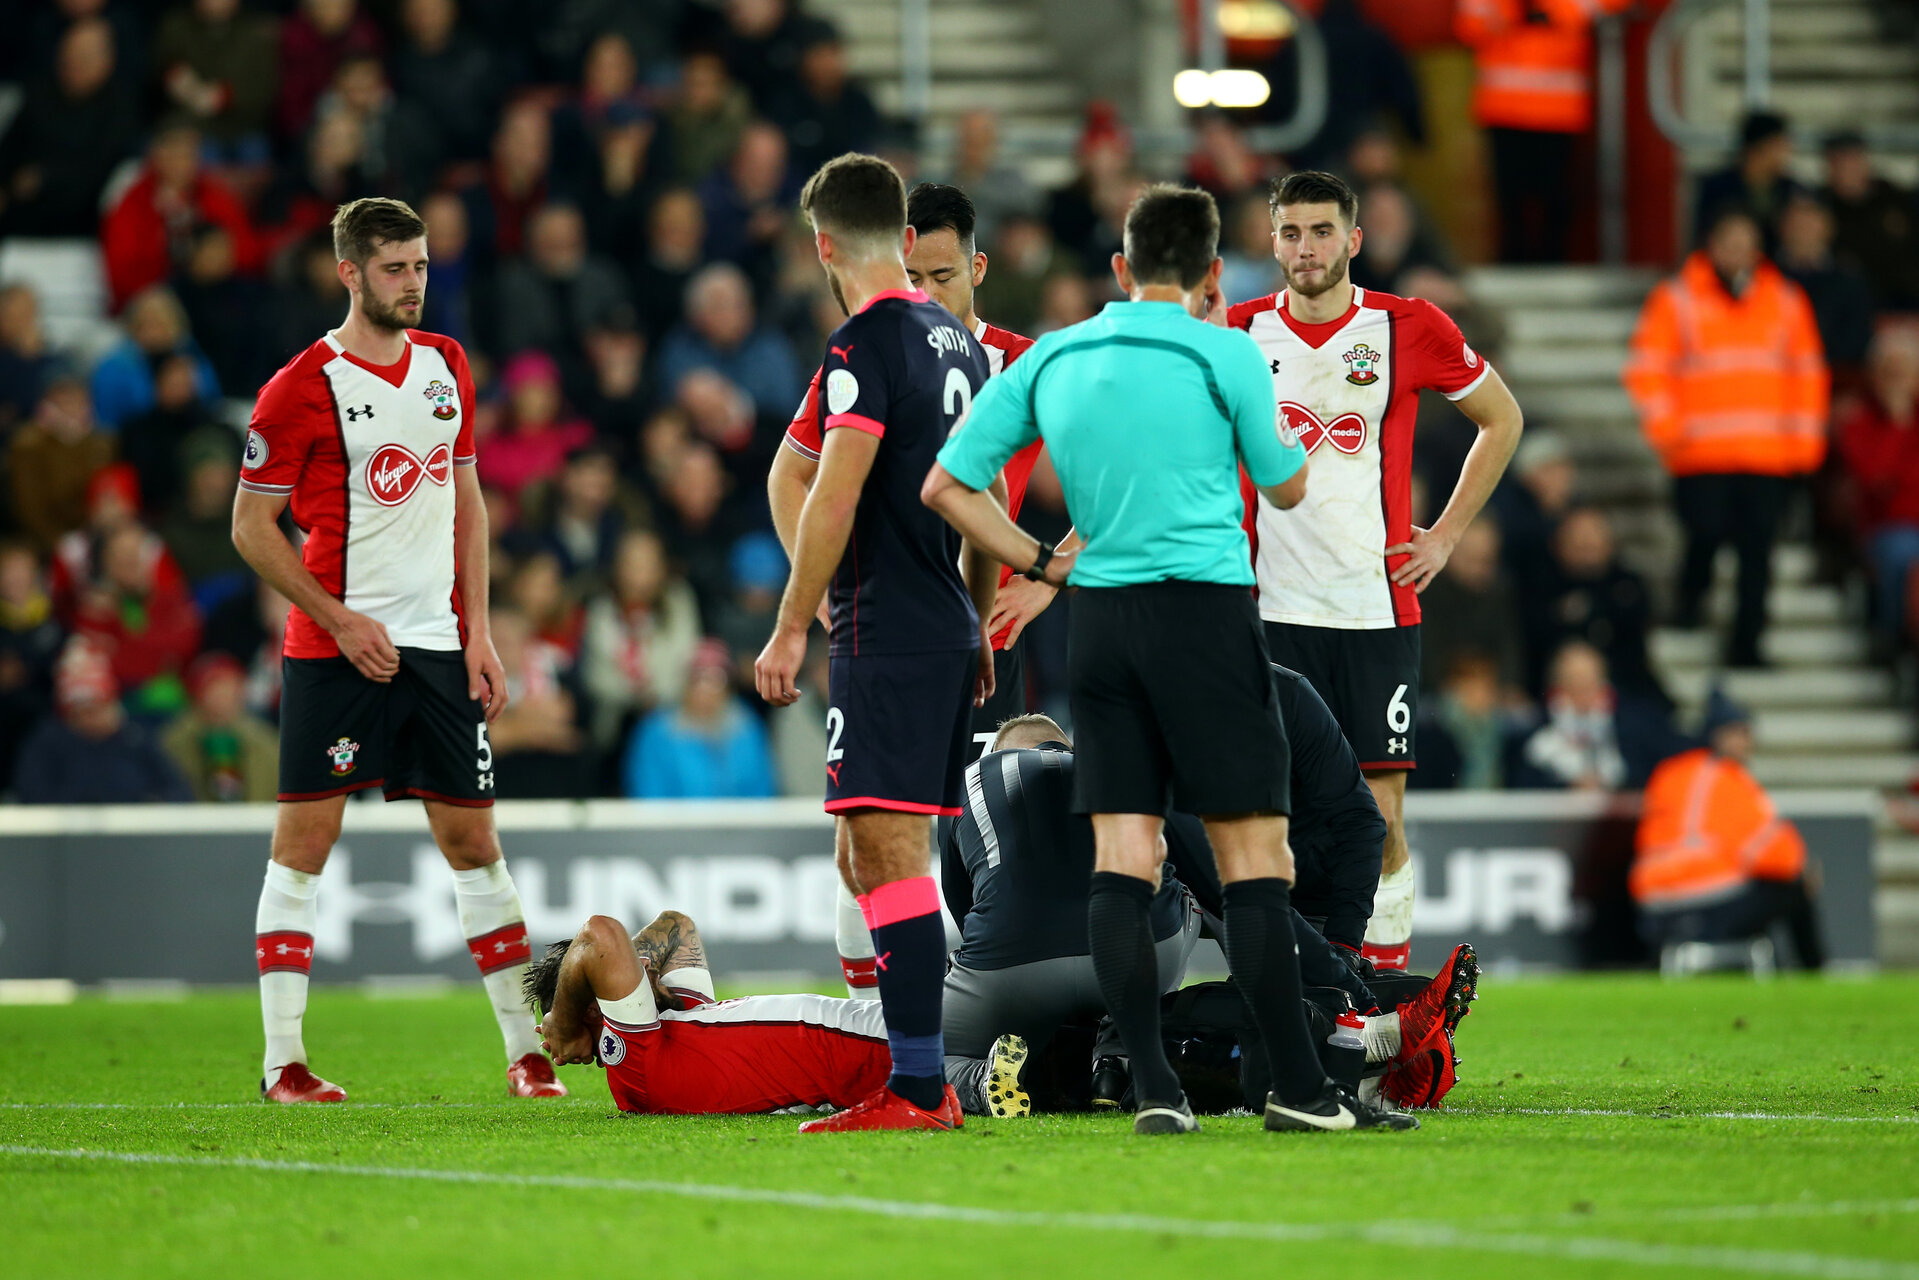 SOUTHAMPTON, ENGLAND - DECEMBER 23: Charlie Austin of Southampton FC goes down injured during the Premier League match between Southampton and Huddersfield Town at St Mary's Stadium on December 23, 2017 in Southampton, England. (Photo by James Bridle - Southampton FC/Southampton FC via Getty Images)